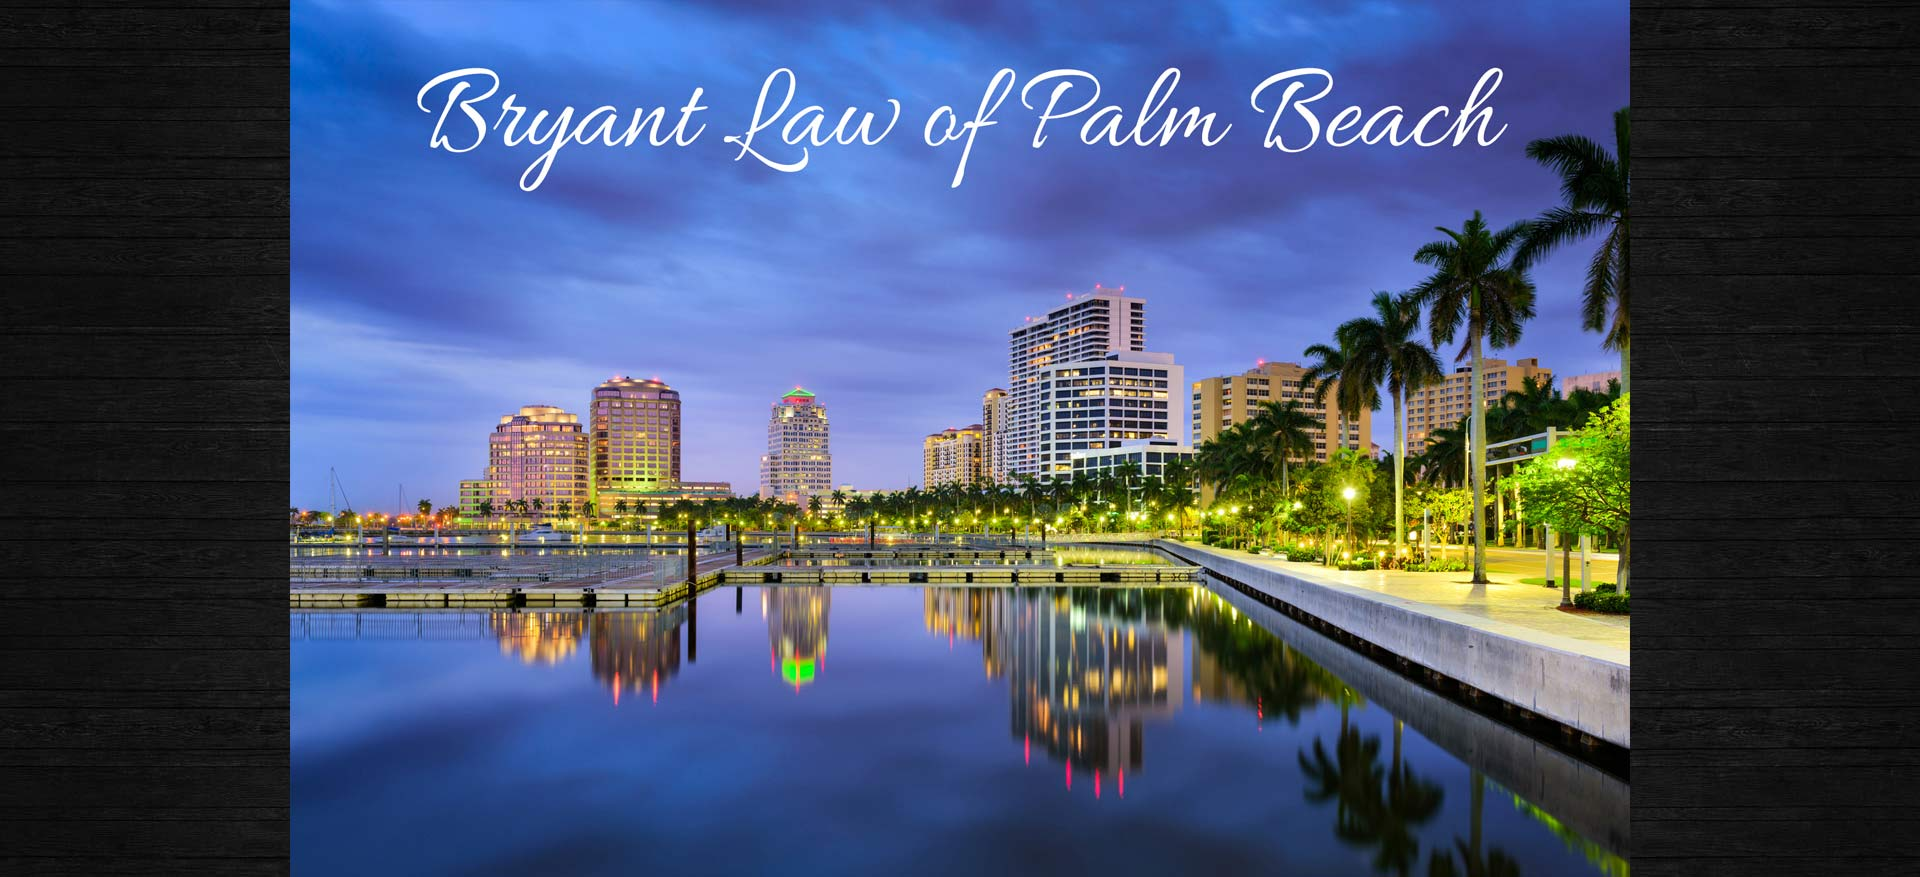 Law Firm Palm Beach Florida